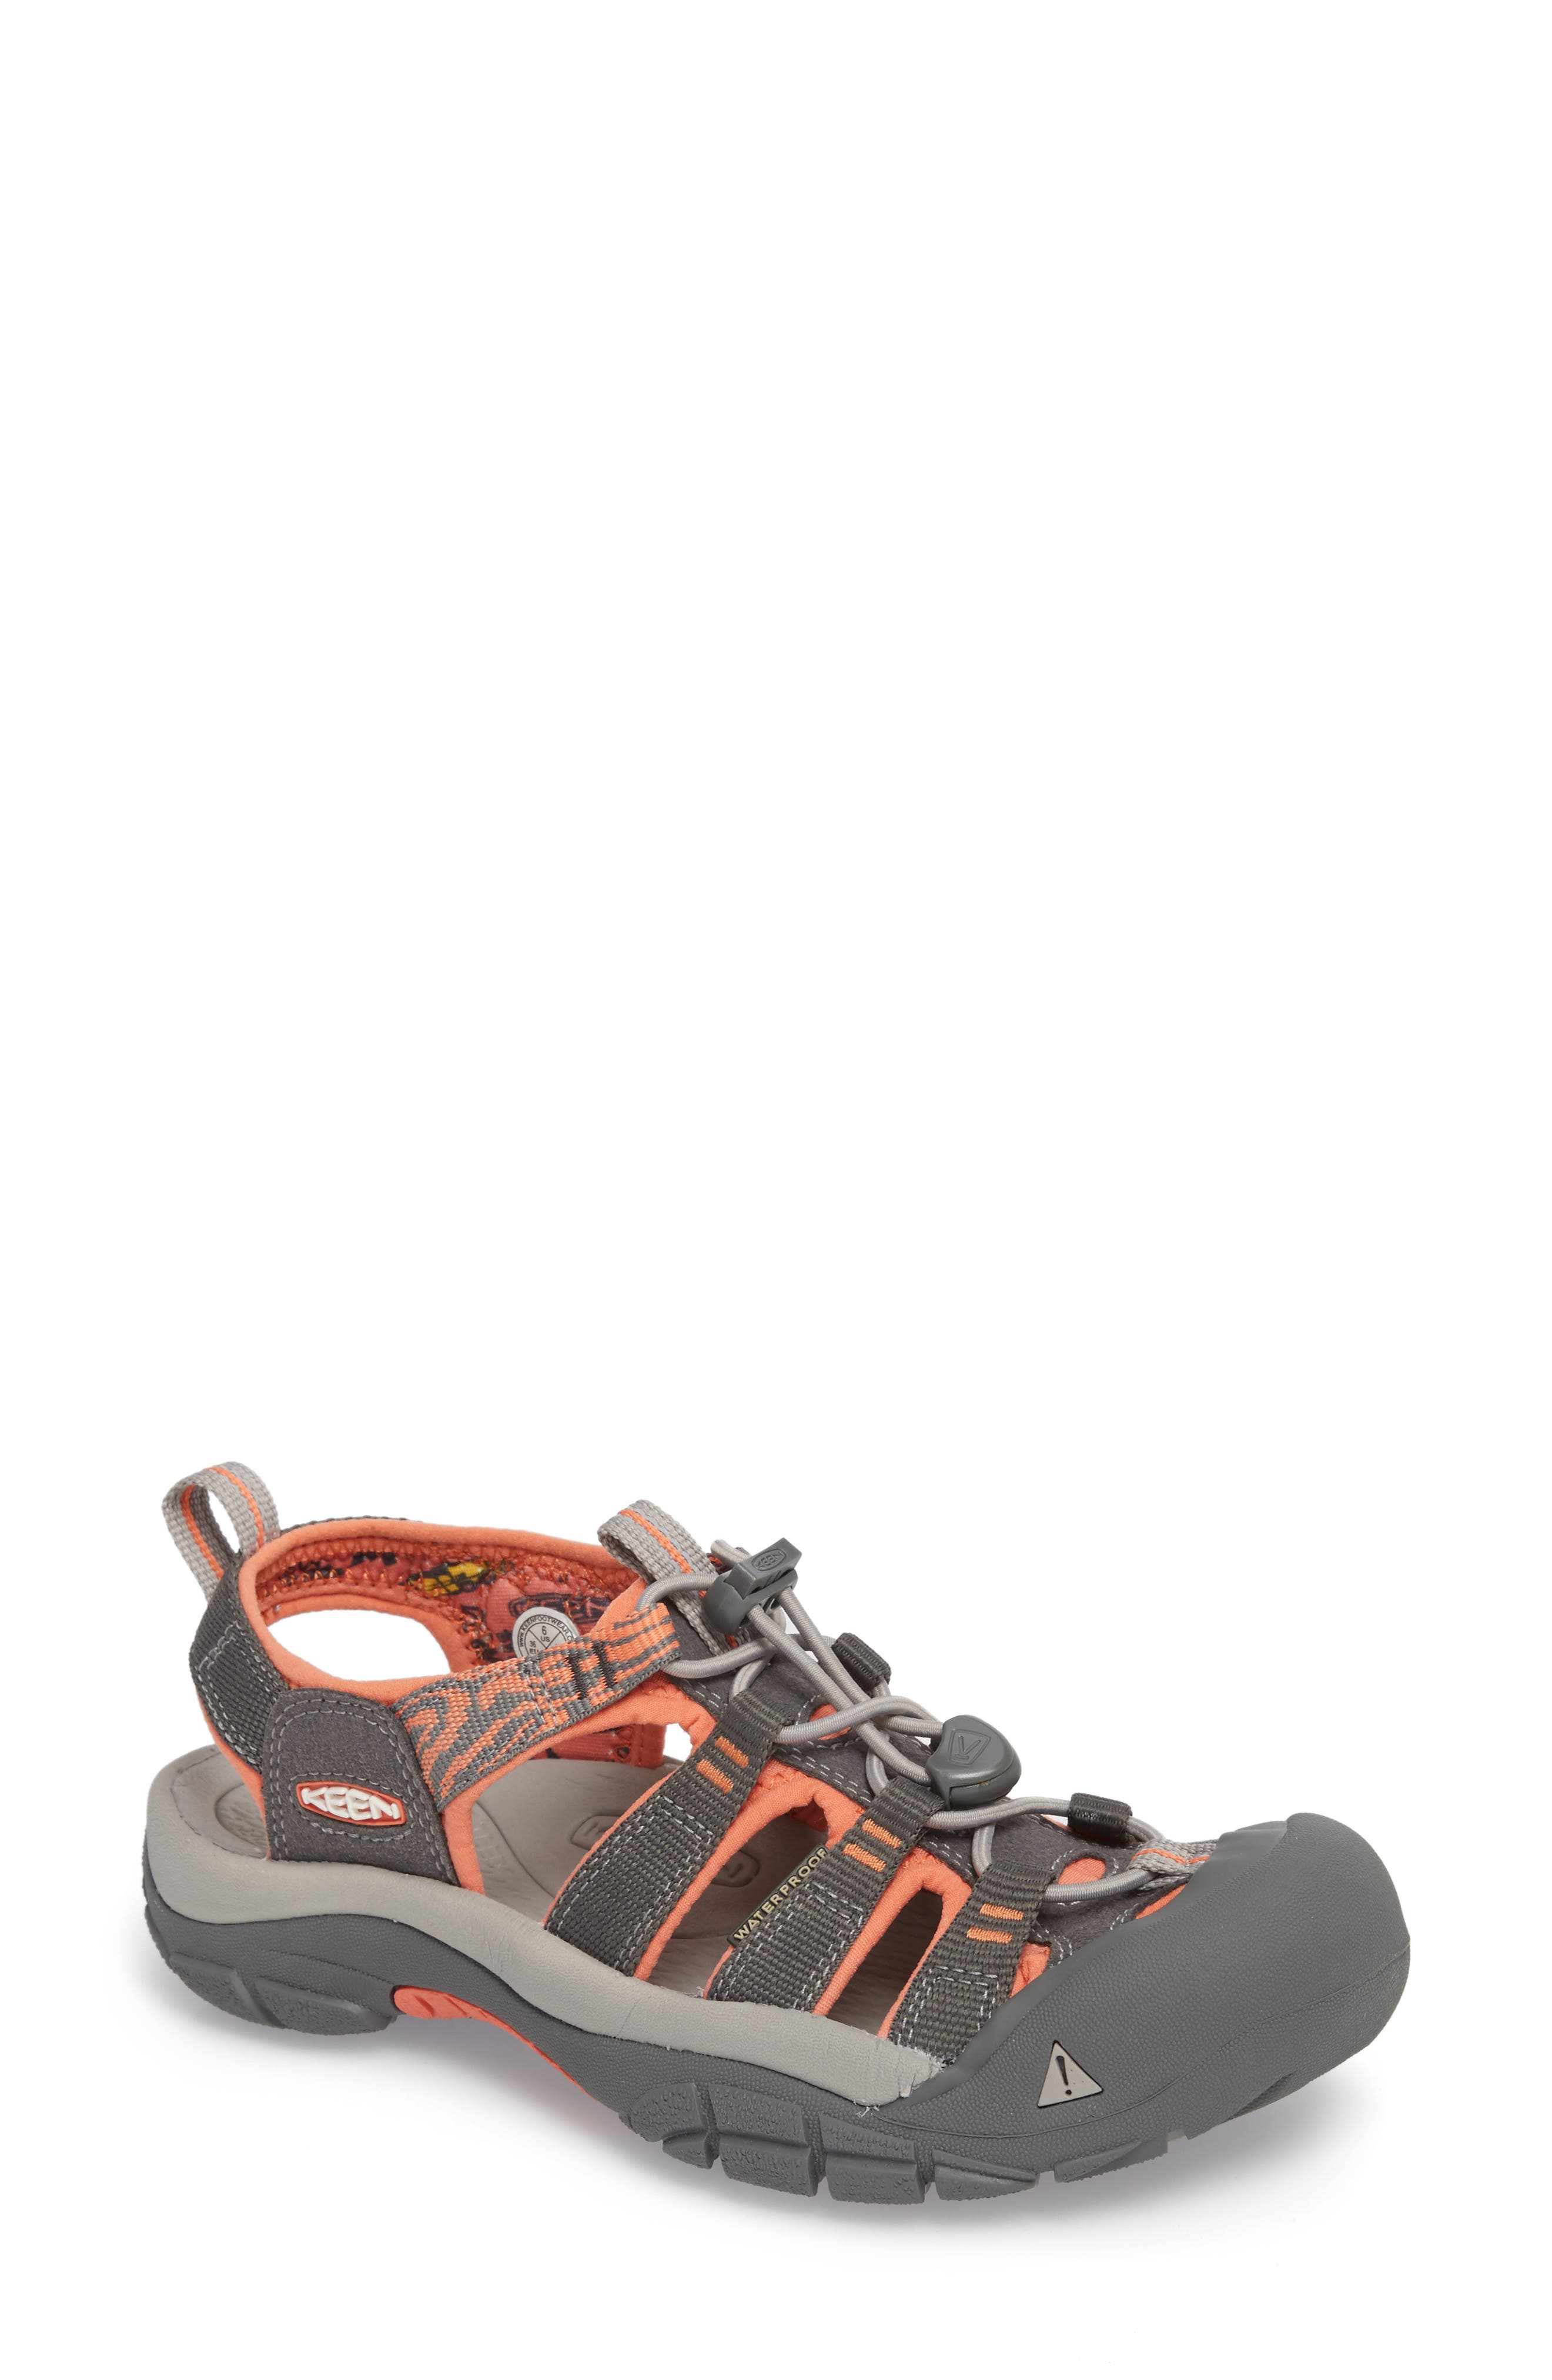 Newport Hydro Sandal,                         Main,                         color, MAGNET/ CORAL